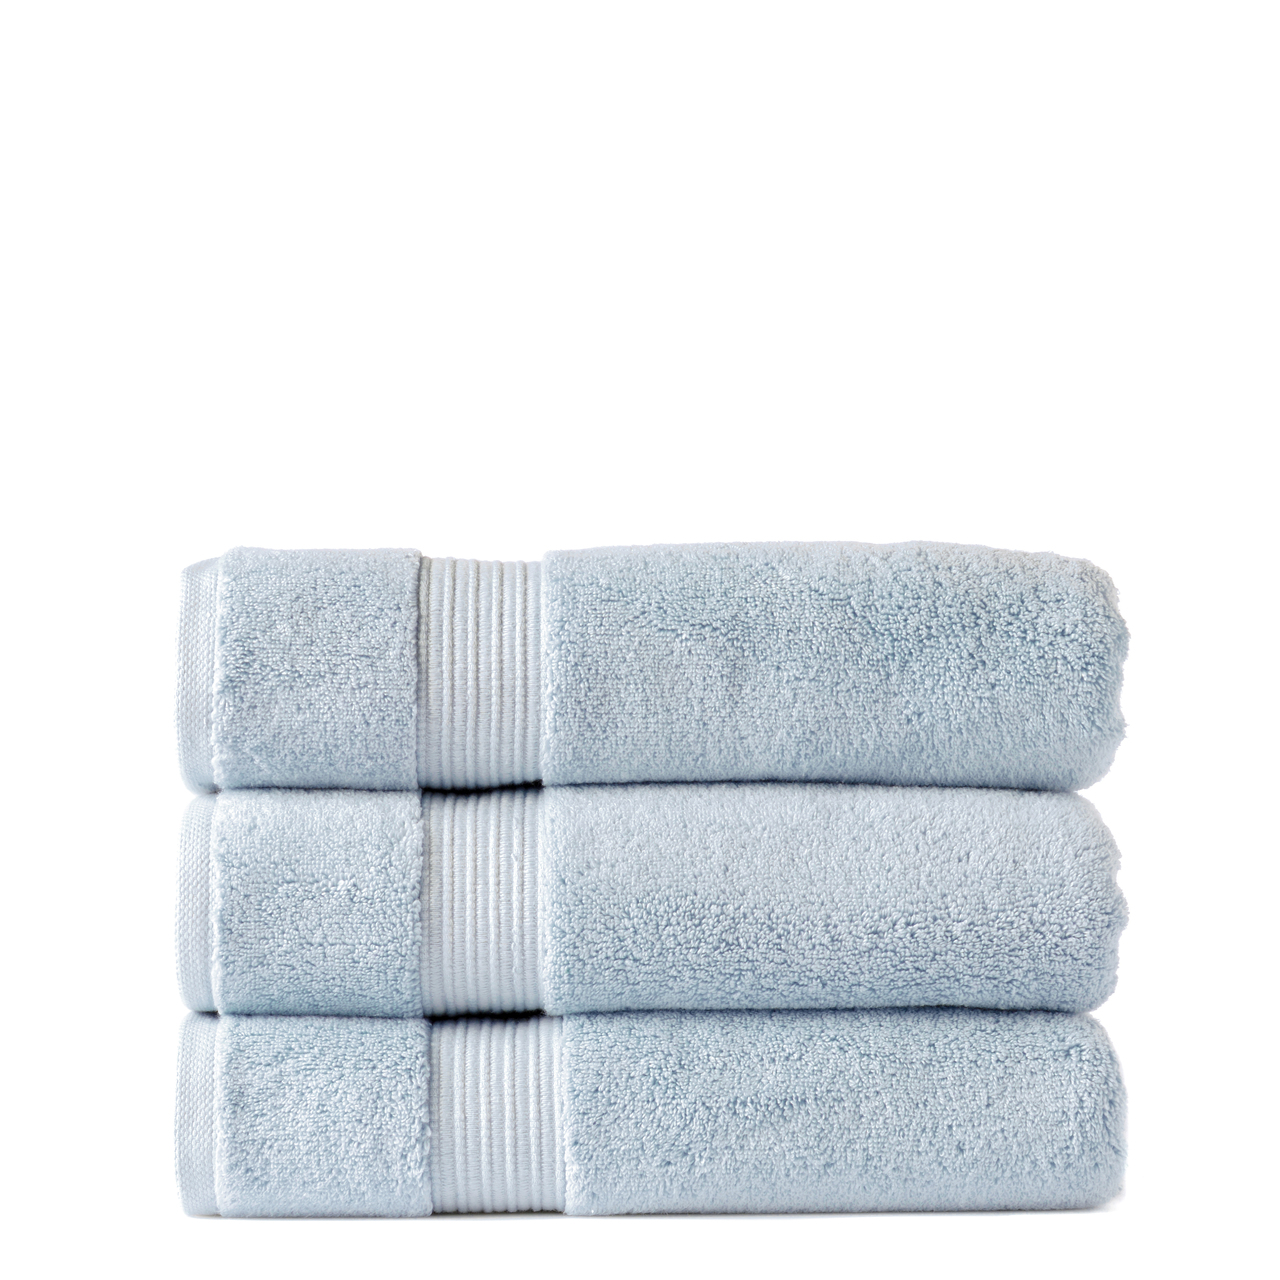 Our Zero Twist 650 gsm 100% cotton bath towels are soft and plush. They are colourfast and durable. The drying becomes more enhanced with every wash maintaing a soft and plush texture.  Colour Blue There are 10 beautiful colours to choose from all with matching accessories.